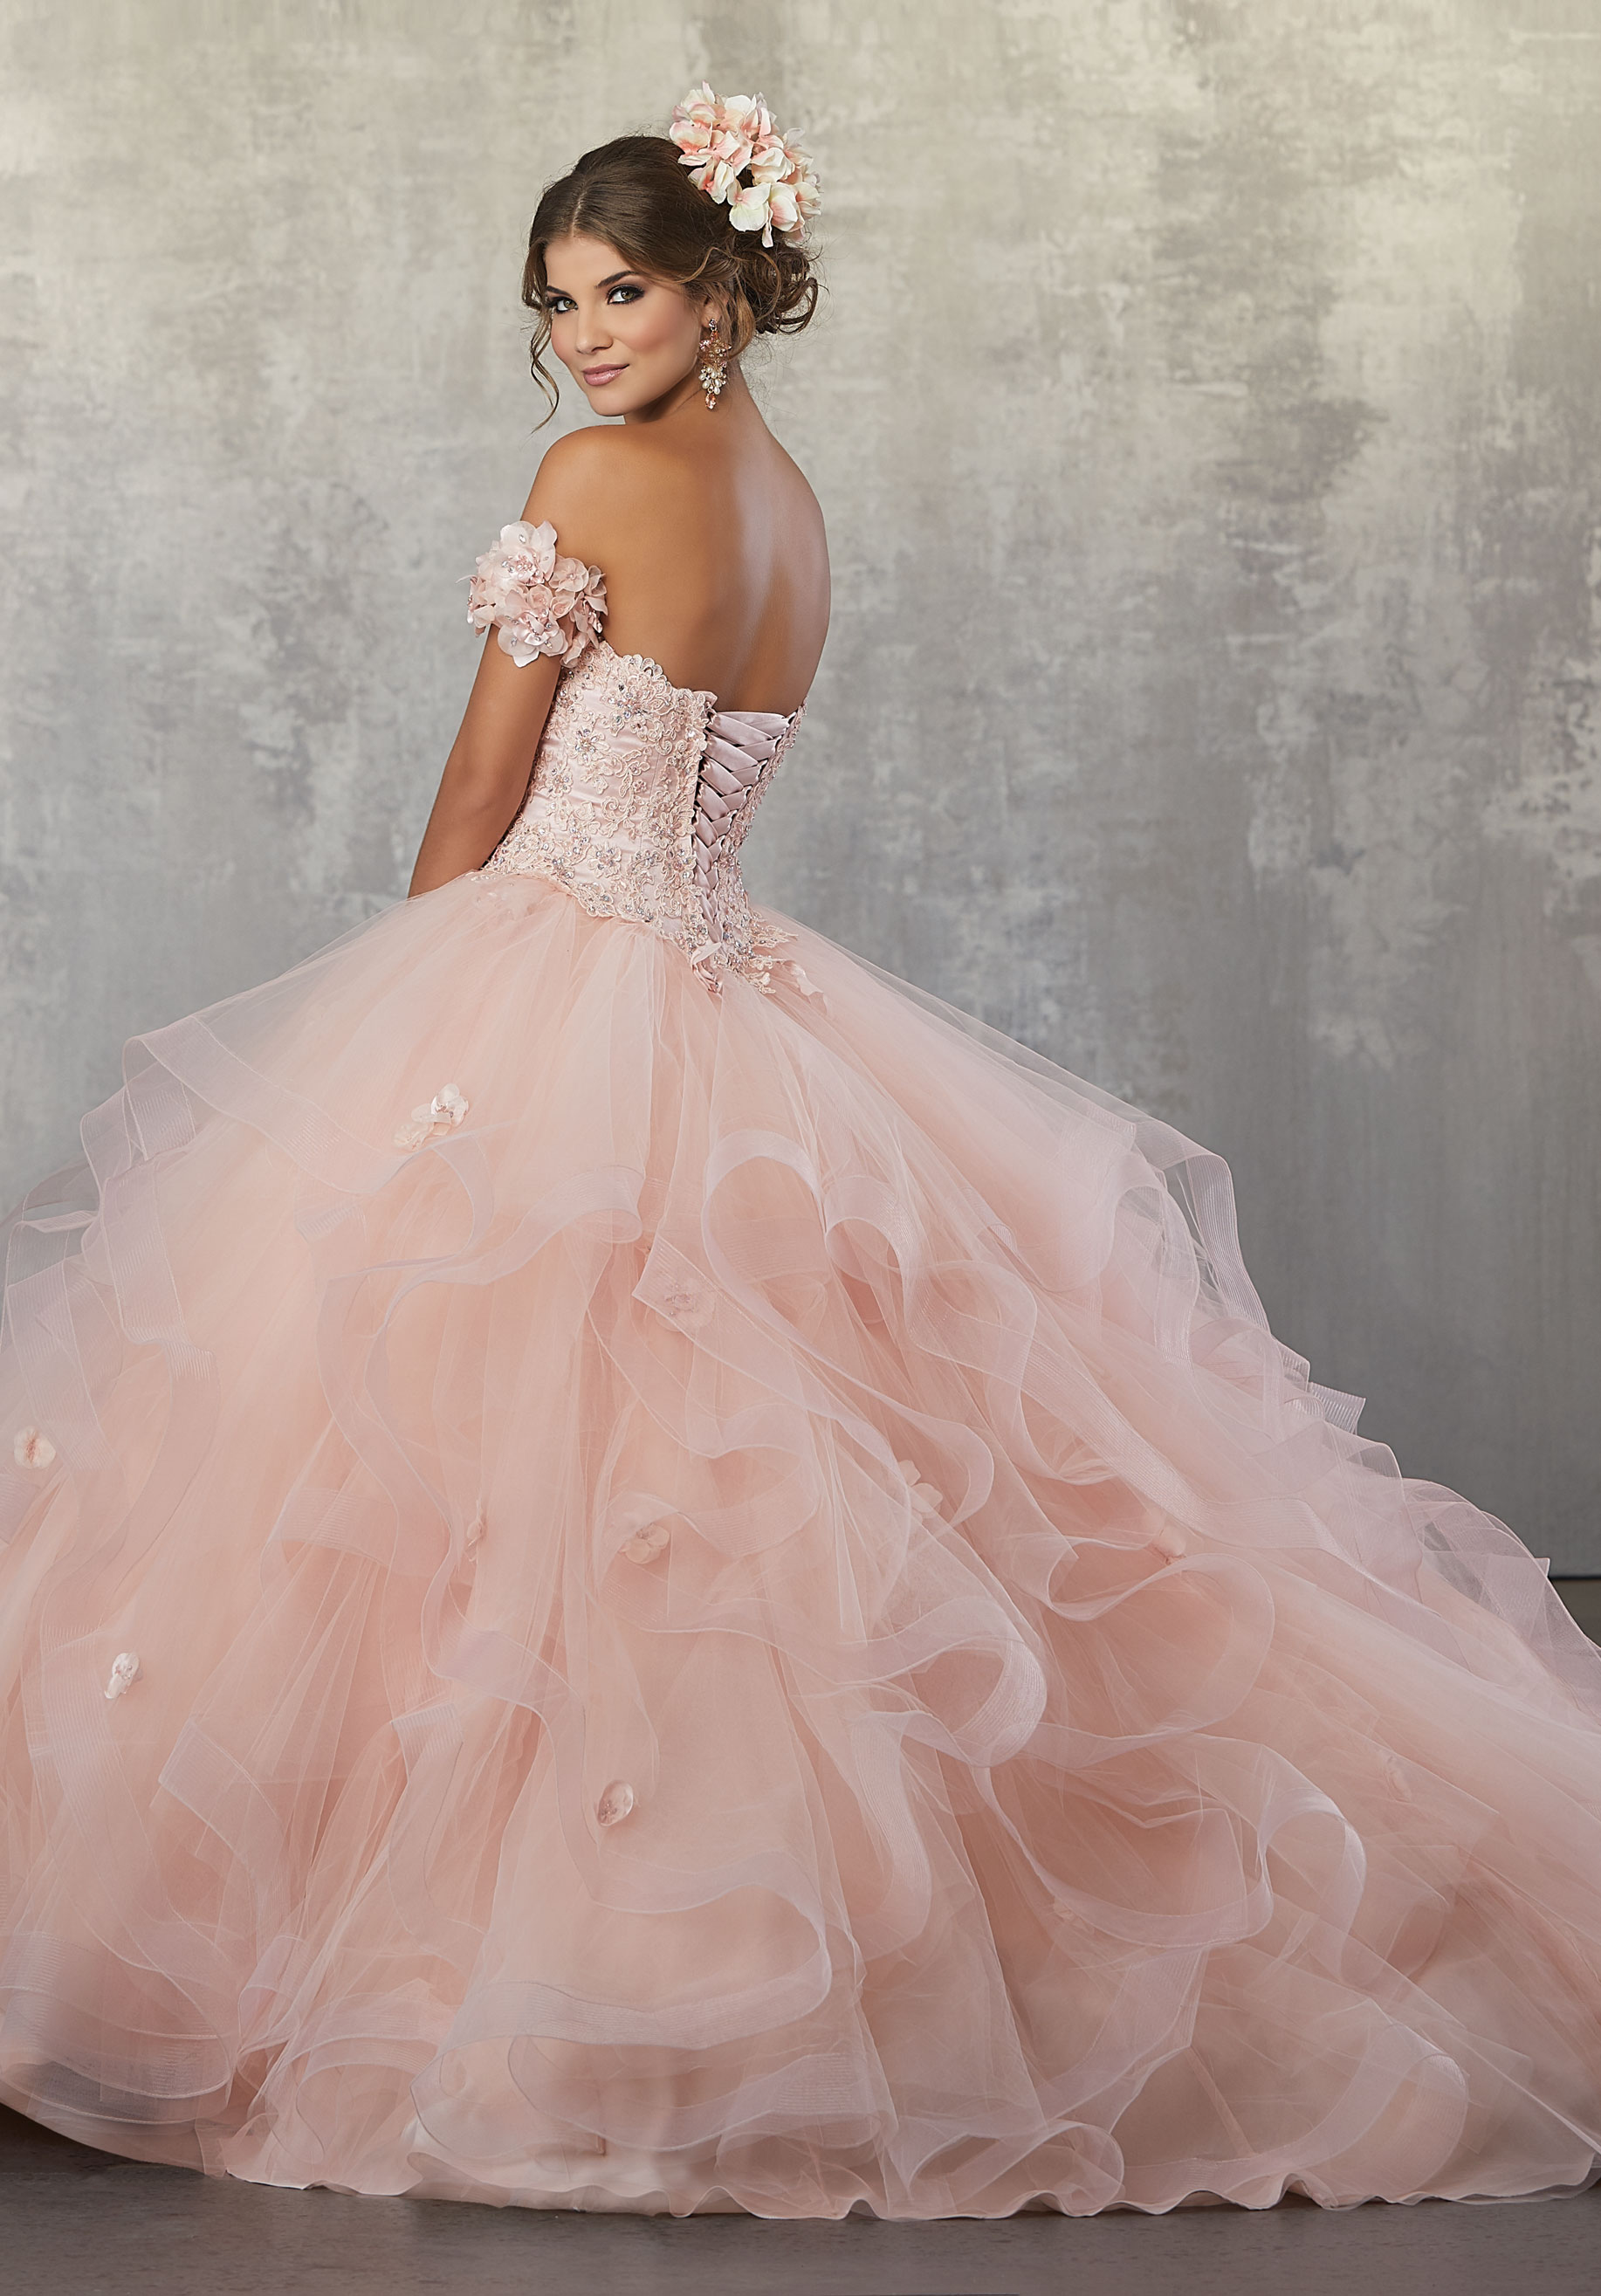 Off The Shoulder Crystal Beads Coral Prom Ball Gown Quinceanera Dresses with Ruffles Flower Puffy Sweet 16 Dress NBW11